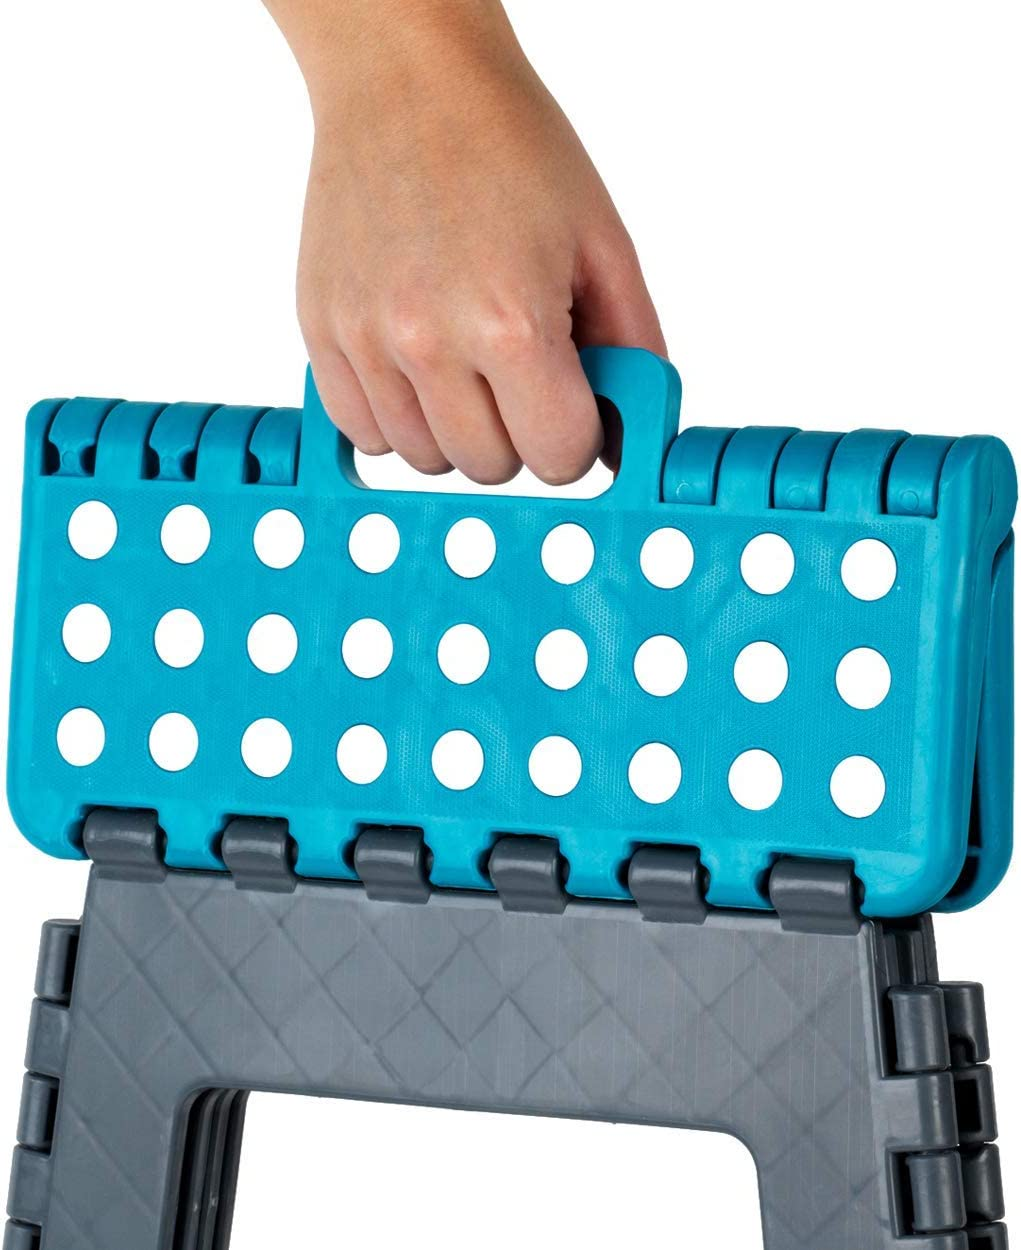 Beldray LA032614TQ Smal Folding Compact Step Stool with Carry Handle Turquoise